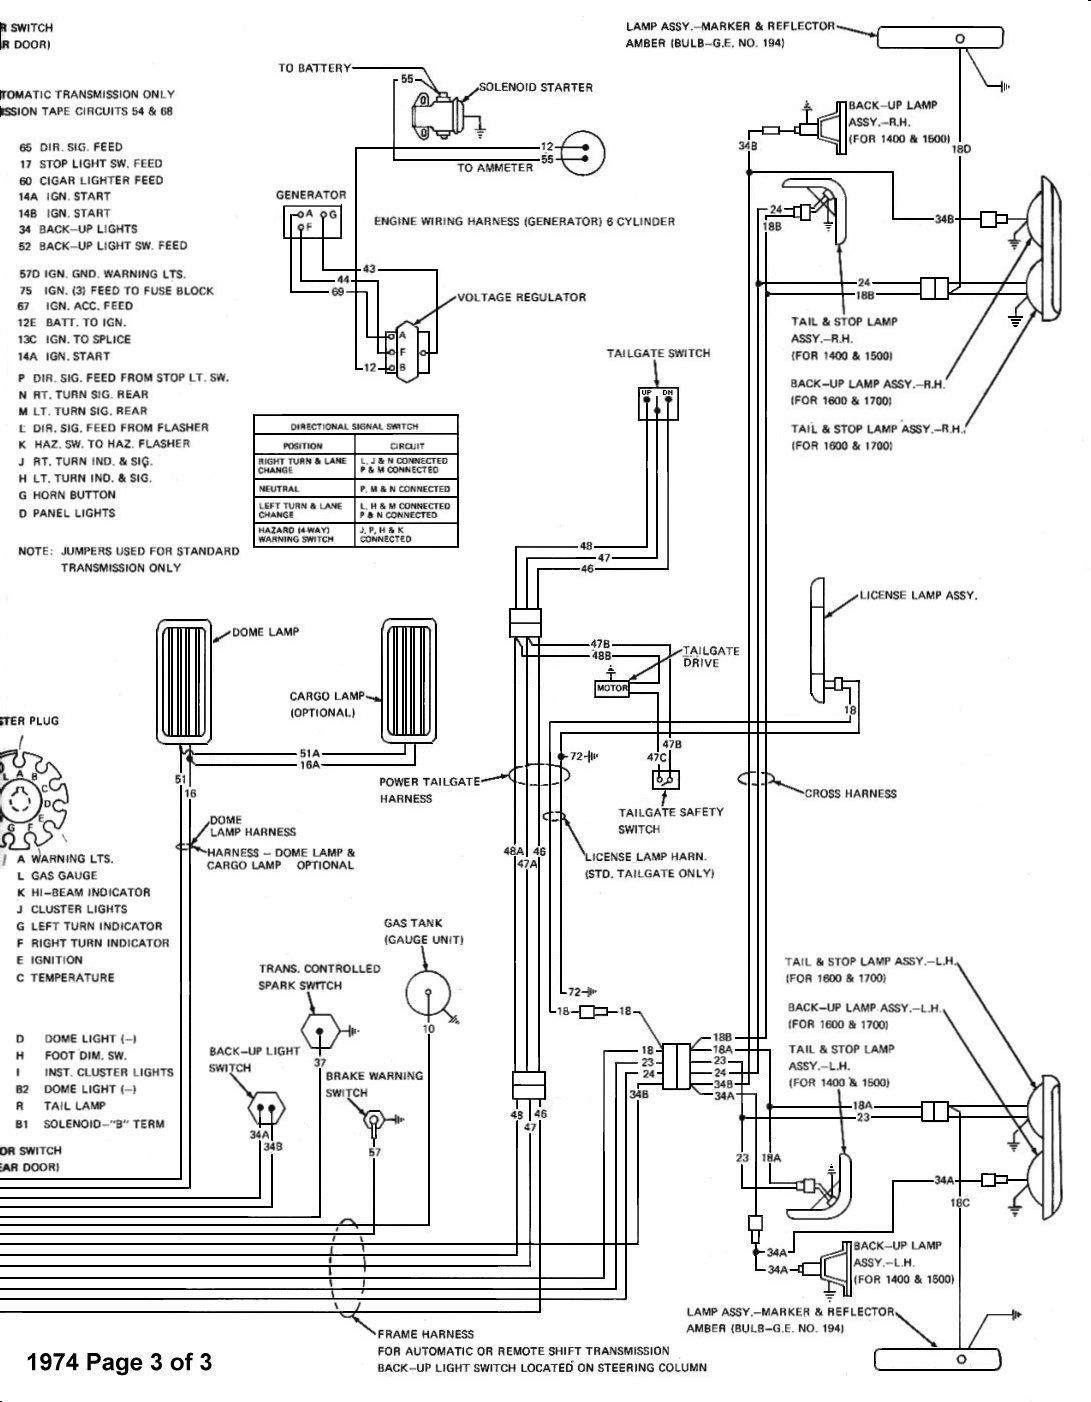 DIAGRAM] 1998 Jeep Cherokee Blower Motor Wiring Diagram FULL Version HD  Quality Wiring Diagram - FUSPORN5990.ILCASTAGNETOAMATRICE.ITfusporn5990.ilcastagnetoamatrice.it